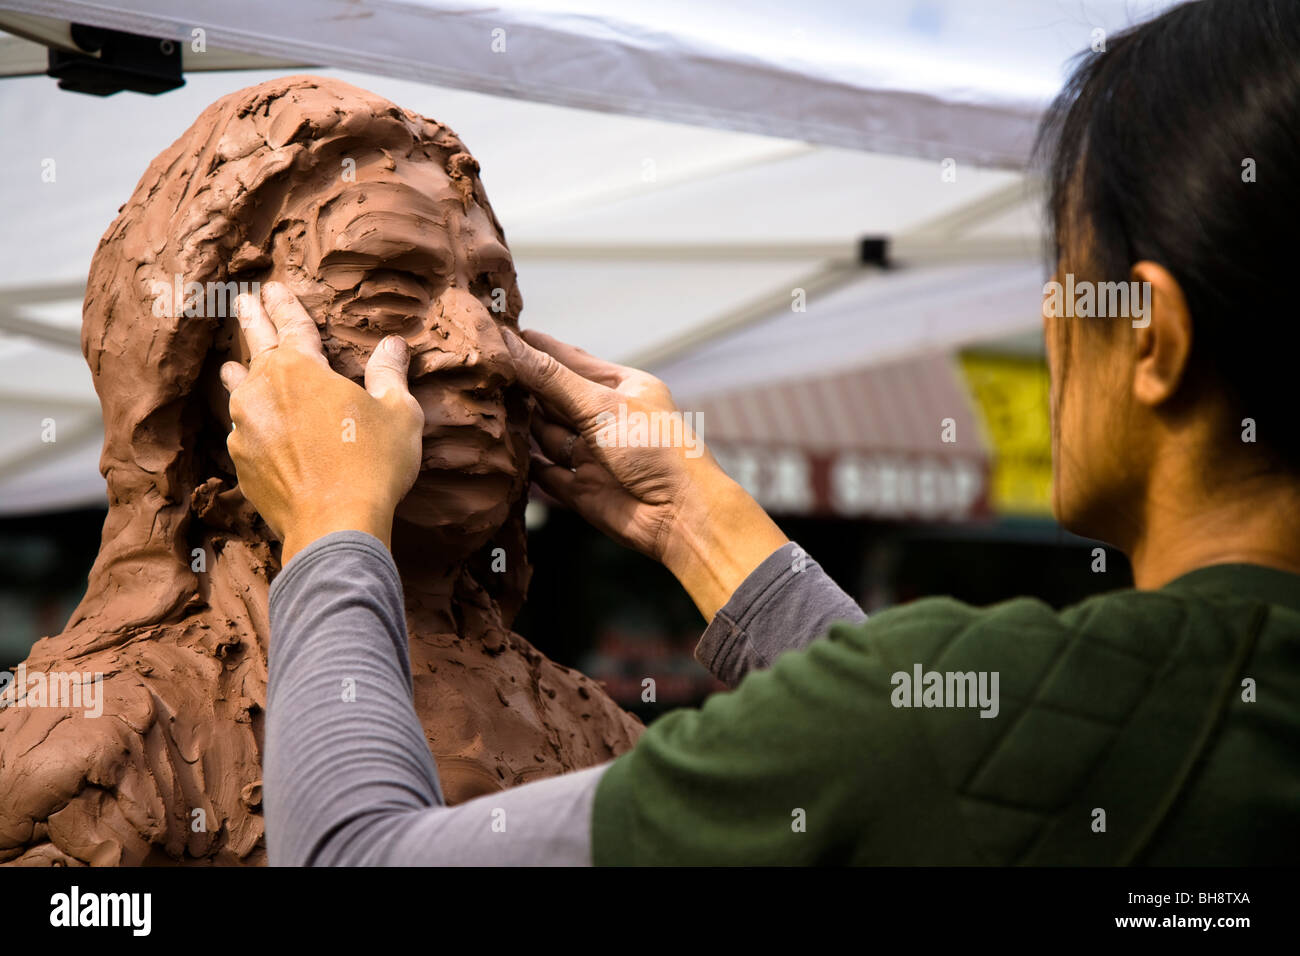 Sculptor crafting a bust of a native Indian with clay, Missoula Montana, USA - Stock Image